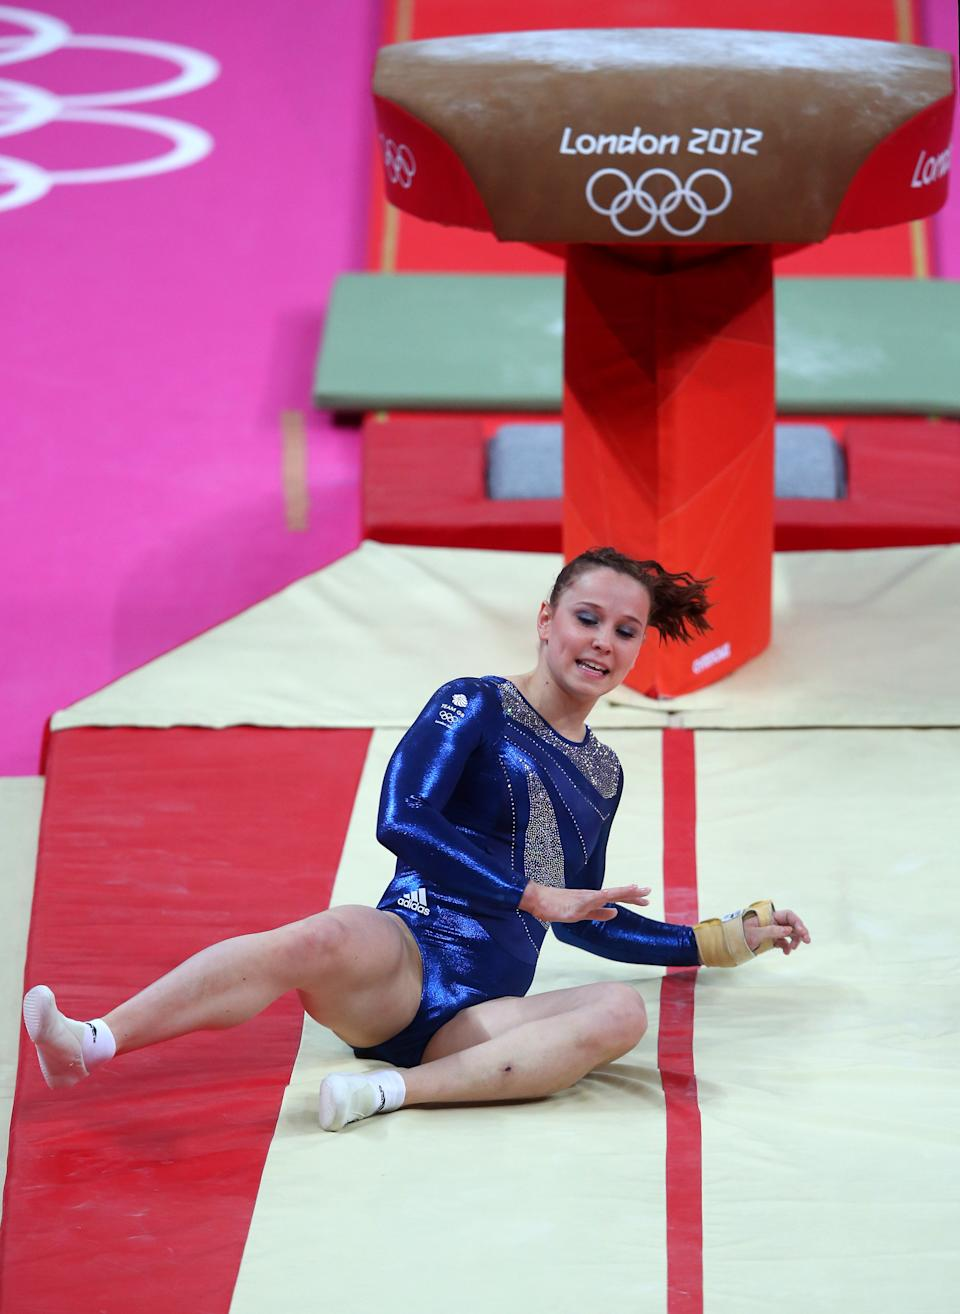 Hannah Whelan of Great Britain falls on her landing on the vault in the Artistic Gymnastics Women's Individual All-Around final on Day 6 of the London 2012 Olympic Games at North Greenwich Arena on August 2, 2012 in London, England. (Photo by Julian Finney/Getty Images)